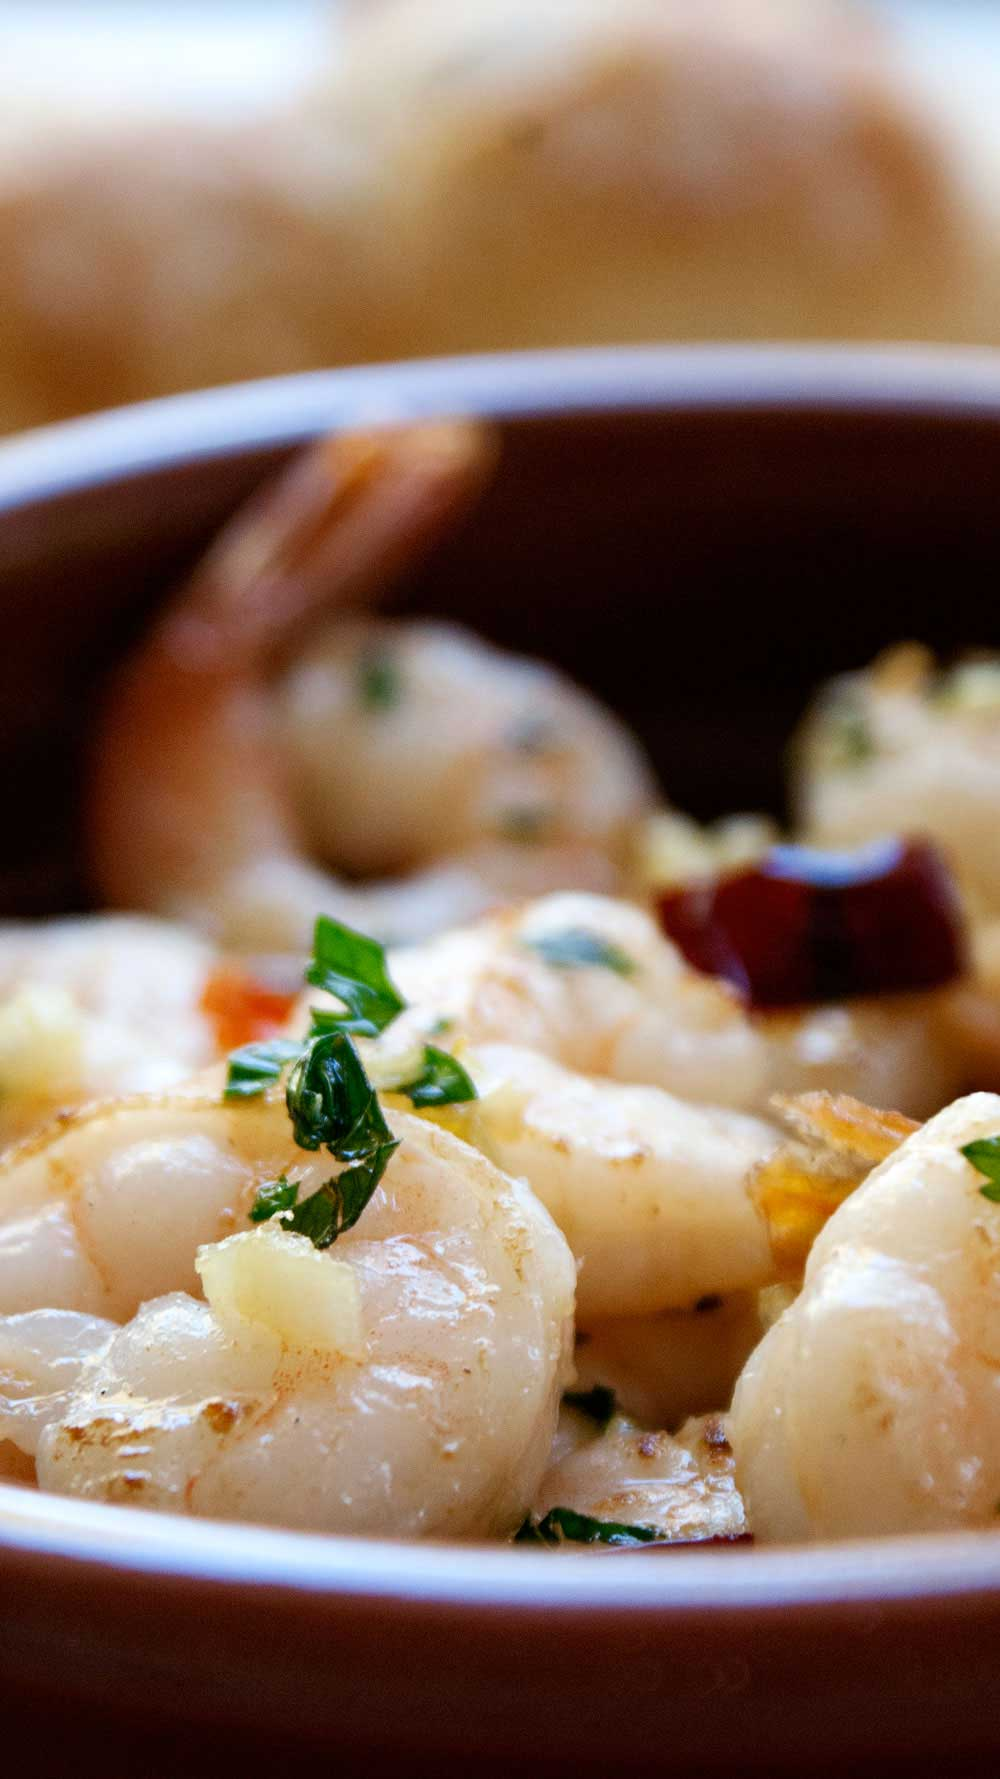 Gambas Pil Pil. A delicious dish of prawns (shrimps) in a wonderful garlic and chilli olive oil. Perfect tapas.